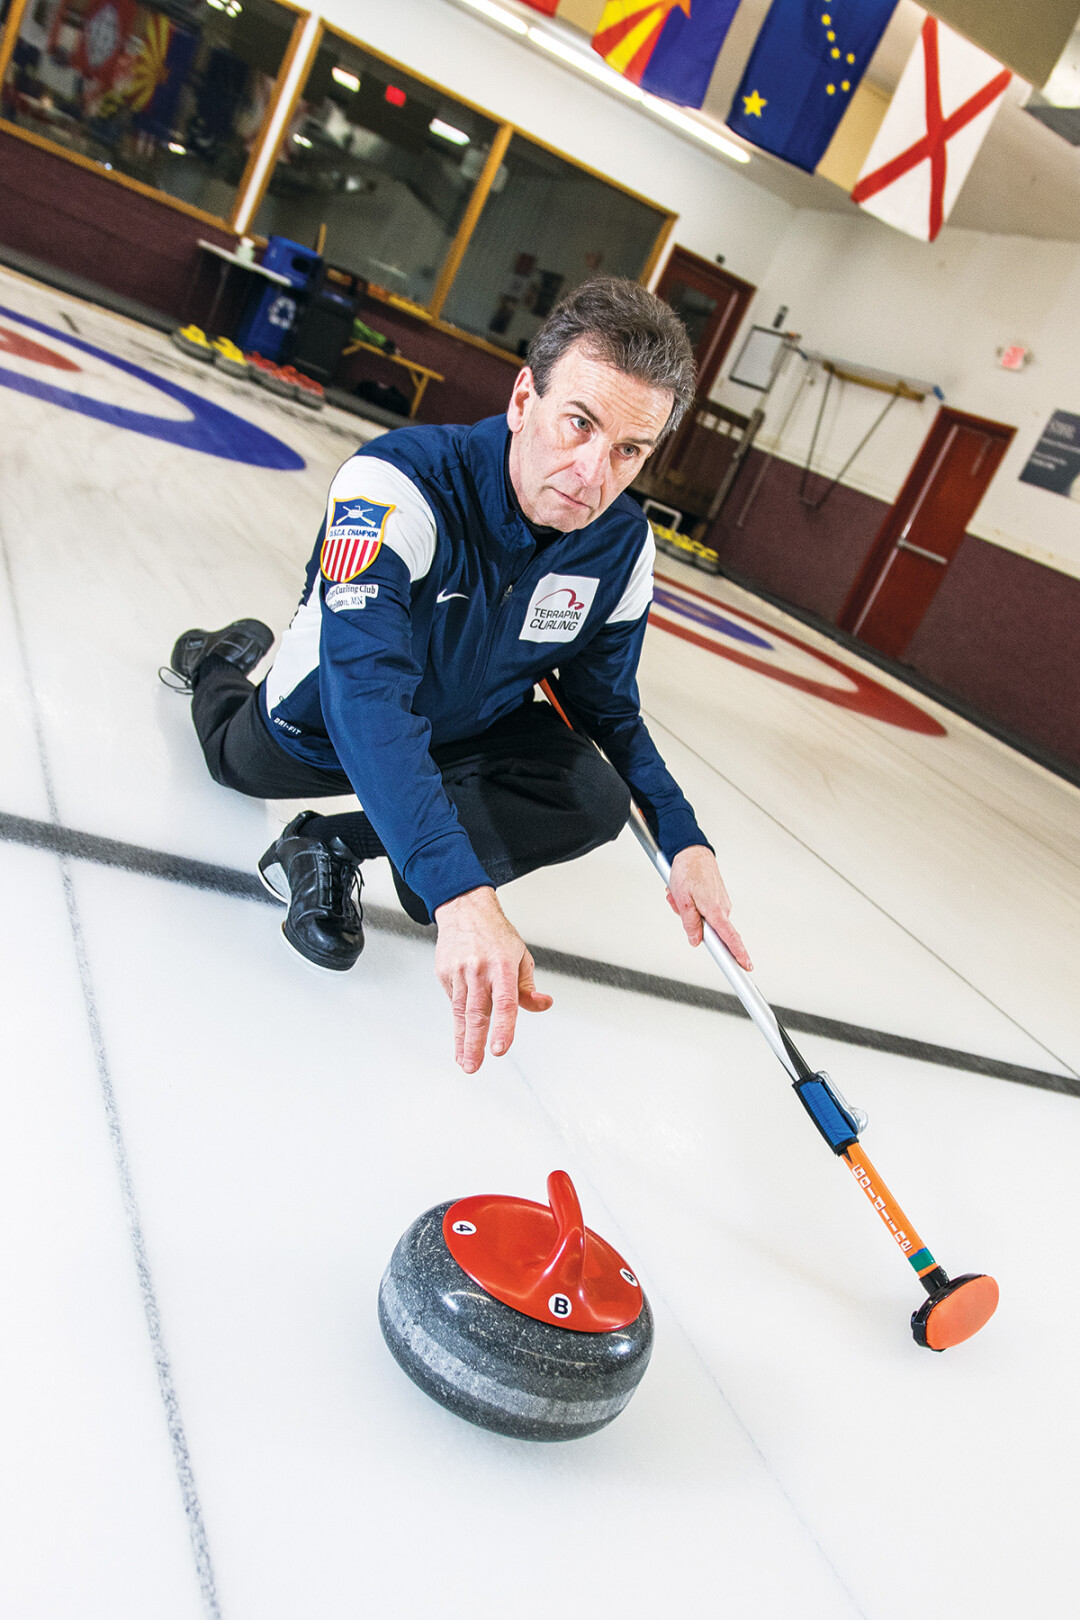 LIKE A ROLLING STONE. Eau Claire curler Geoff Goodland will go to Norway in April to compete in the World Senior Curling Championships in Stavangar, Norway. It will be his fifth trip to the World Senior event.